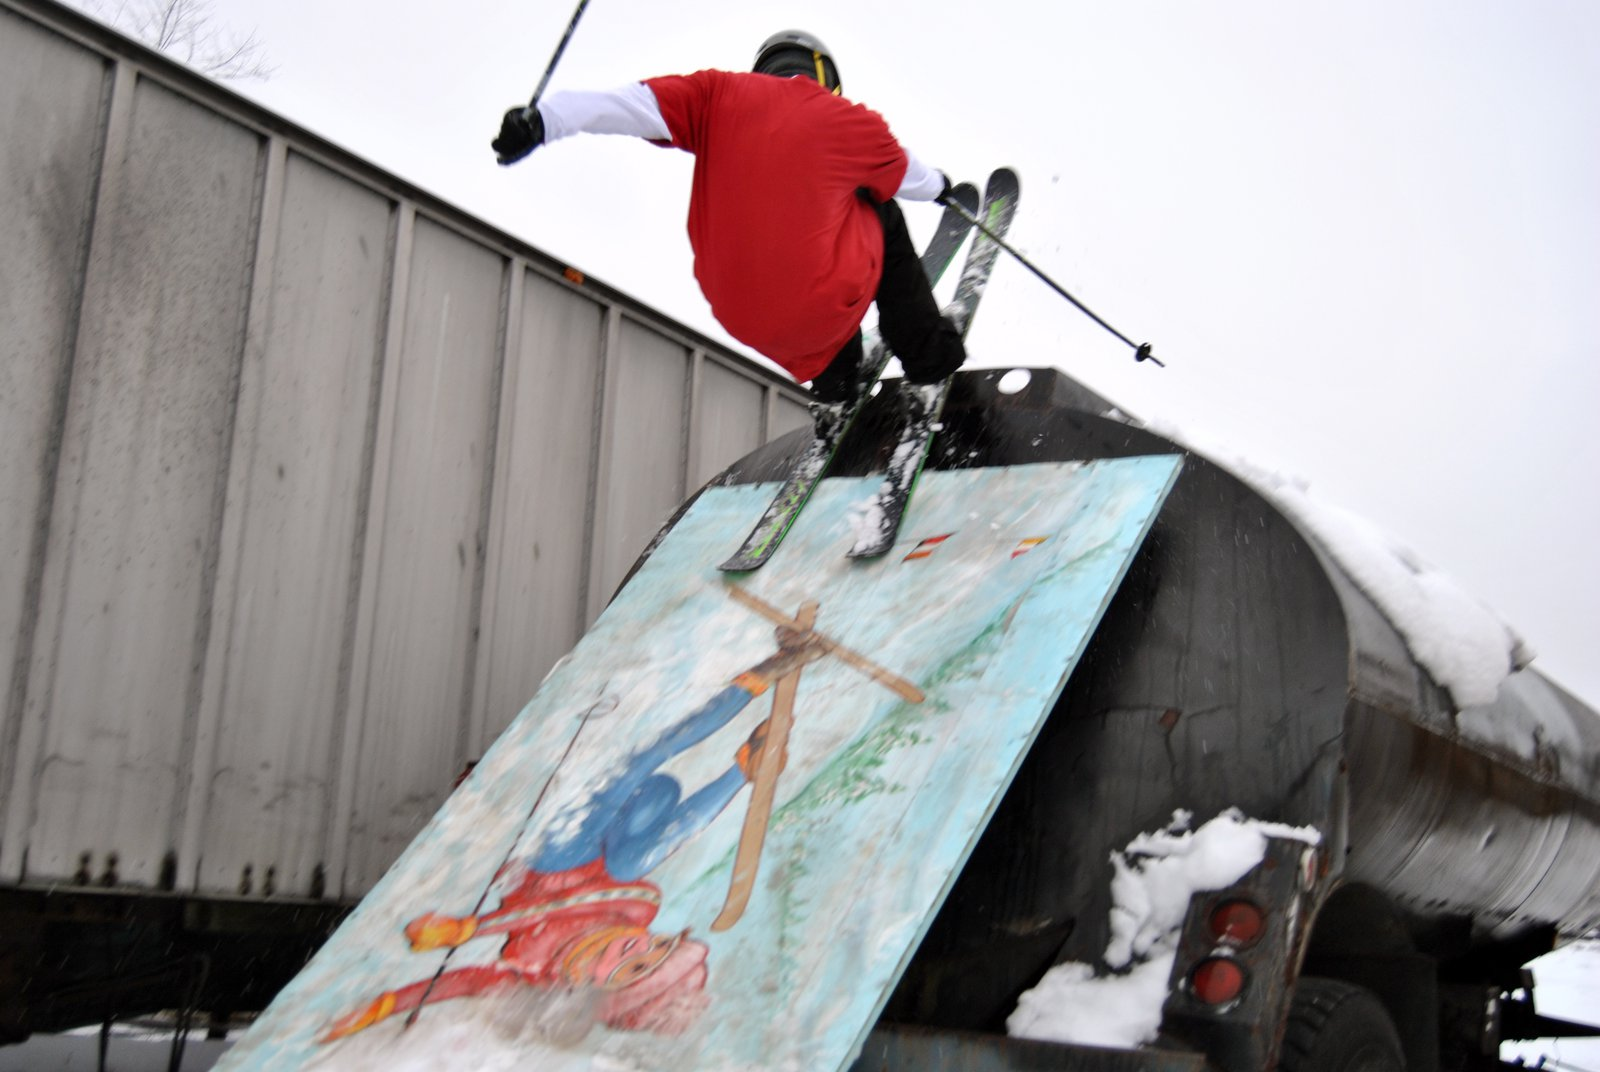 Skiing on a skier